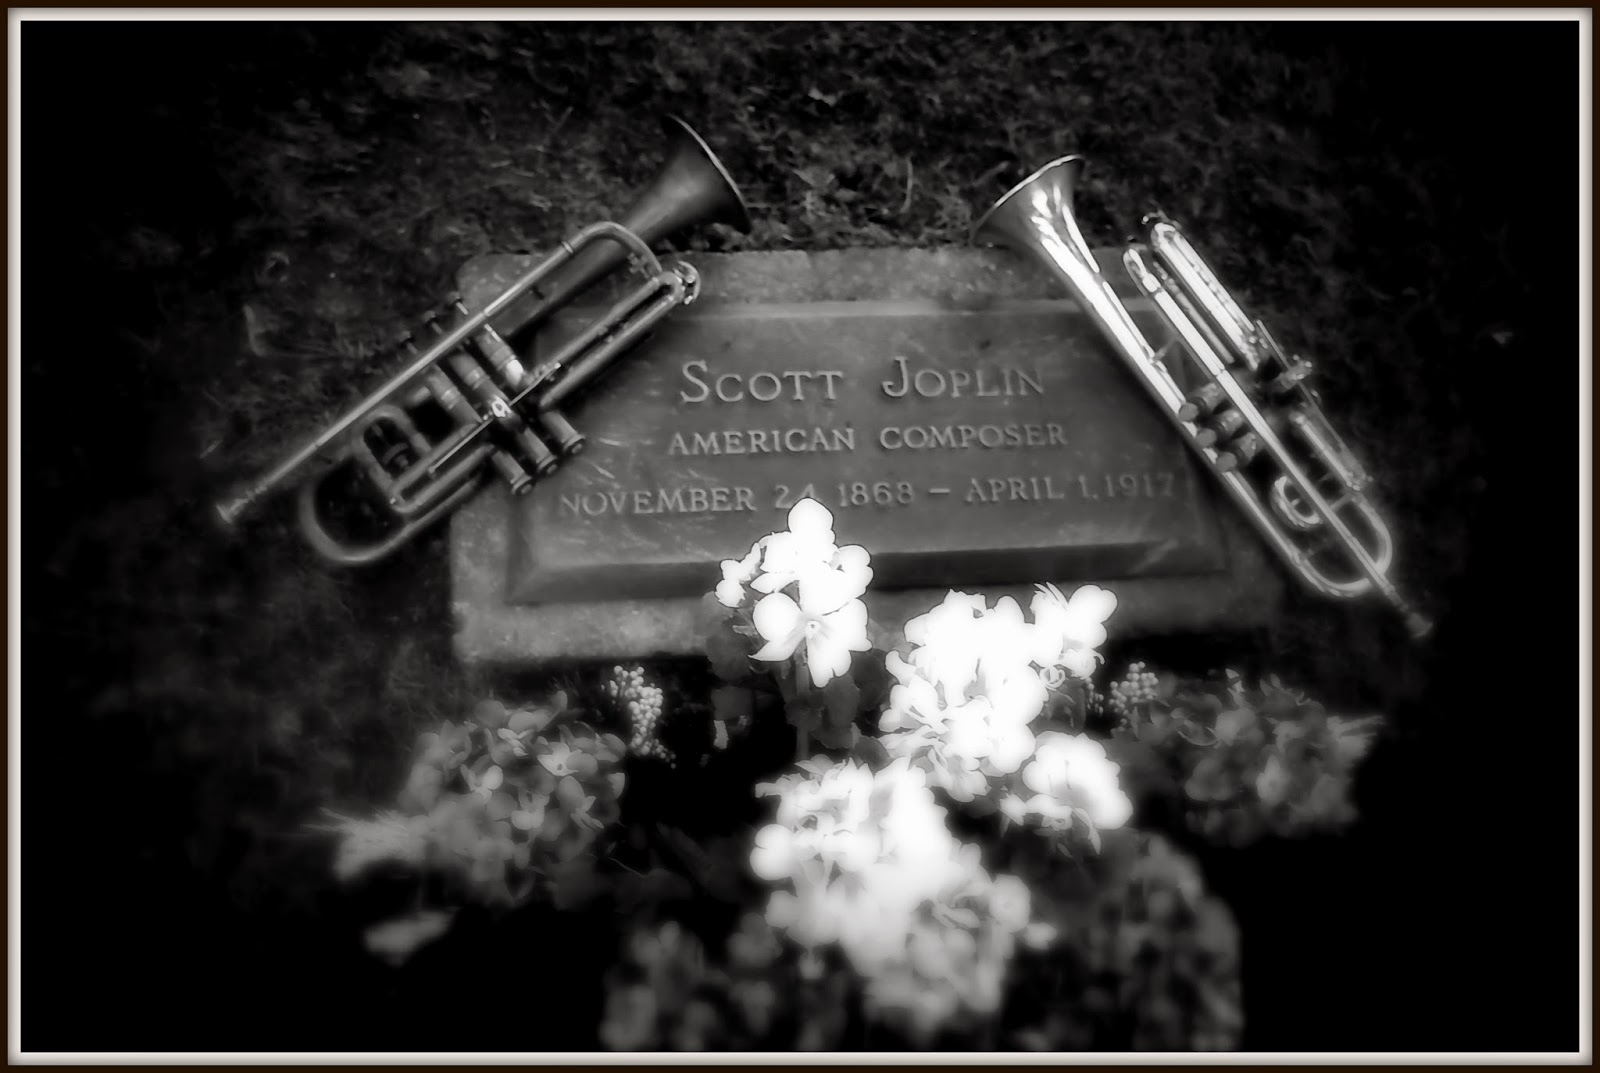 Scott Joplin's Grave SIte (click for the album link)